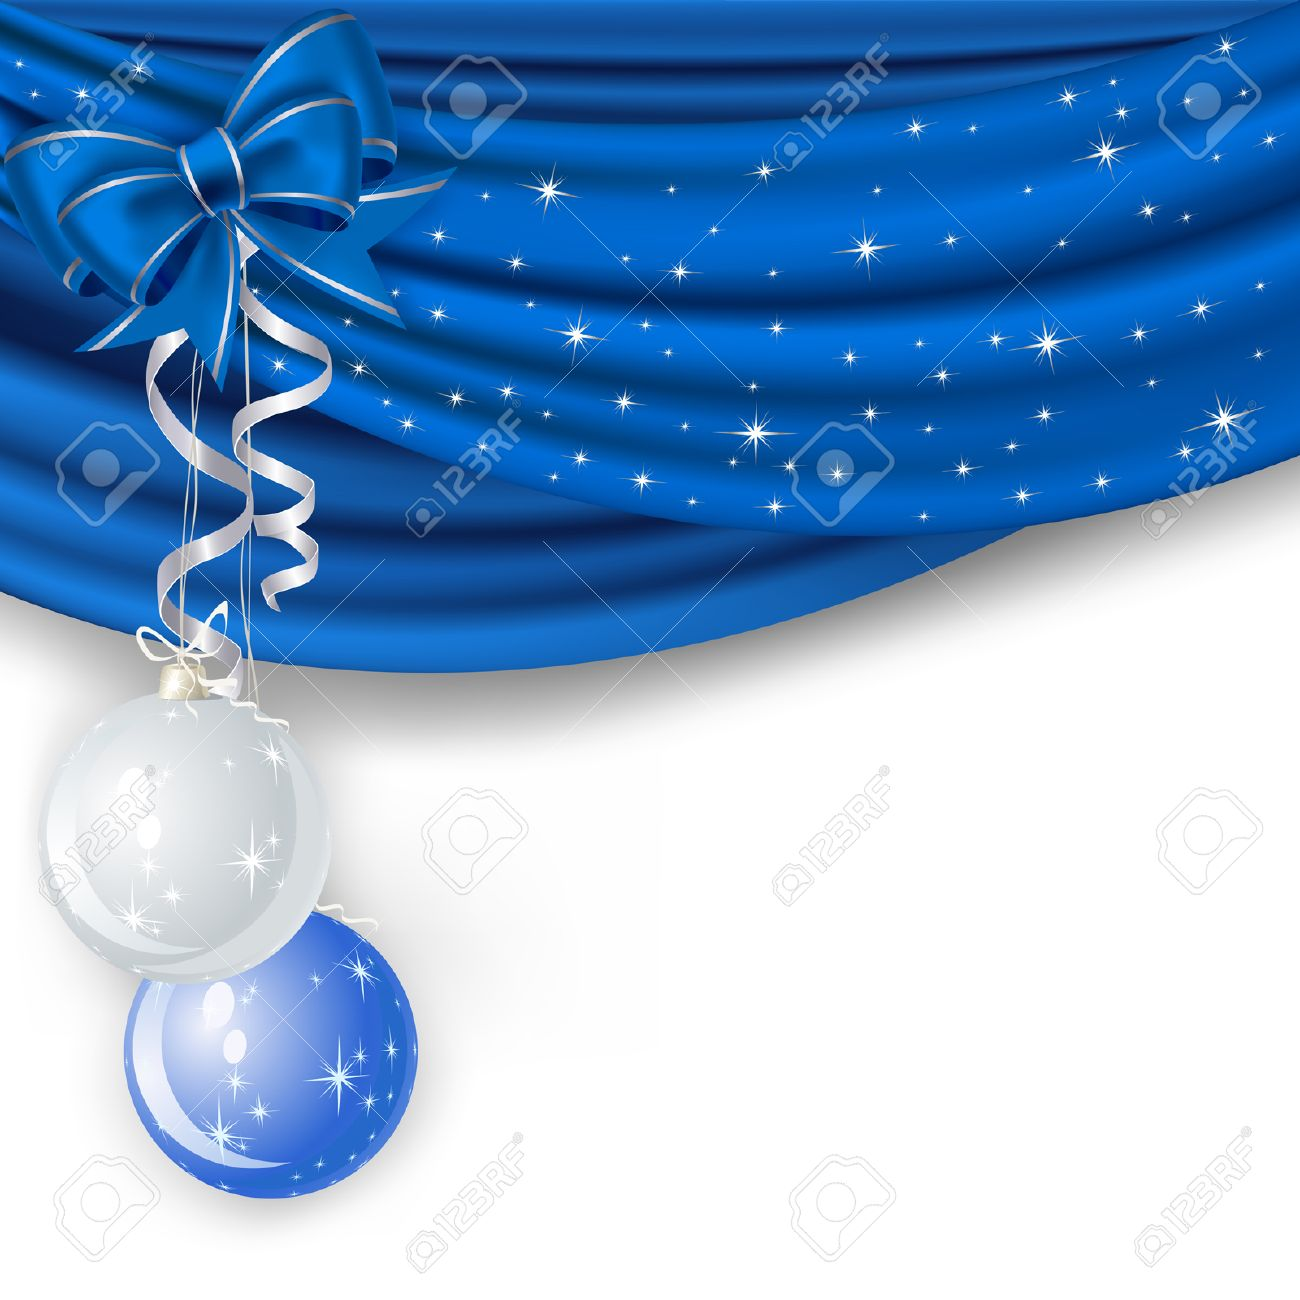 Christmas Background With Blue Curtain And Balls Royalty Free ...